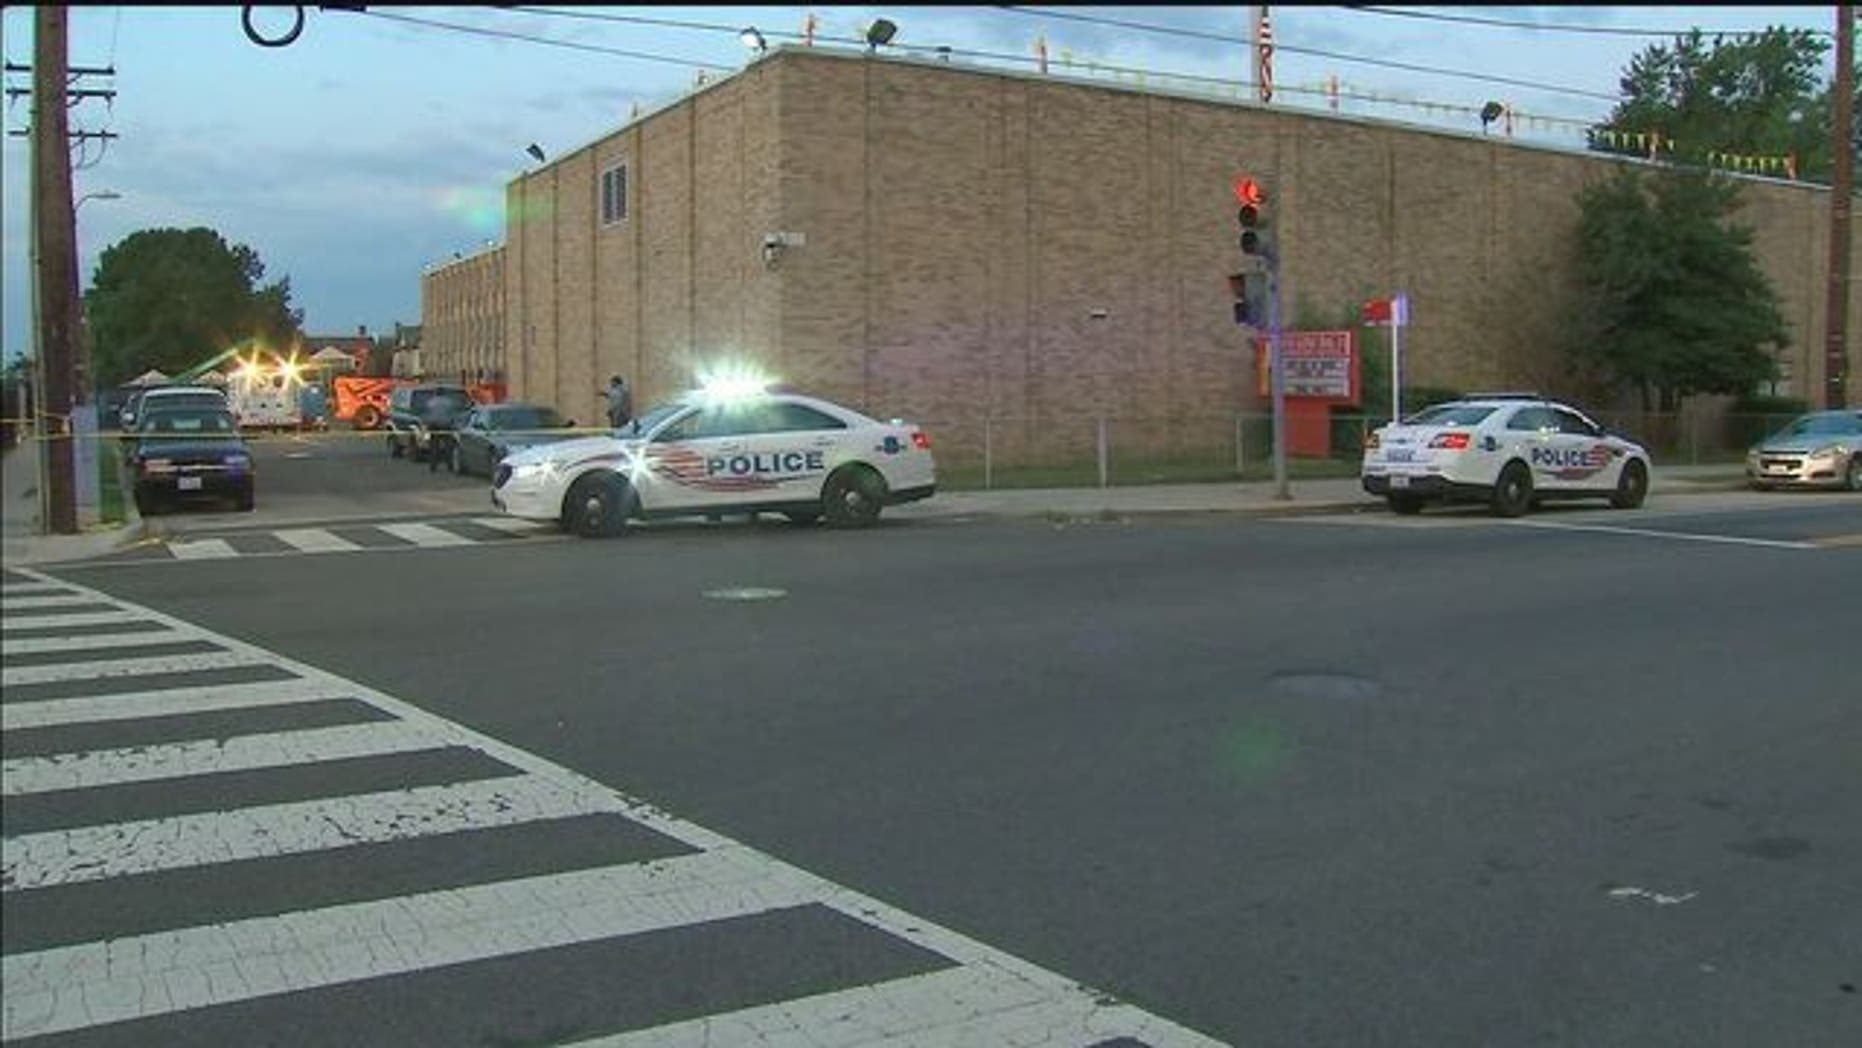 Police allegedly came under fire near an elementary school in Washington, D.C., early Tuesday.